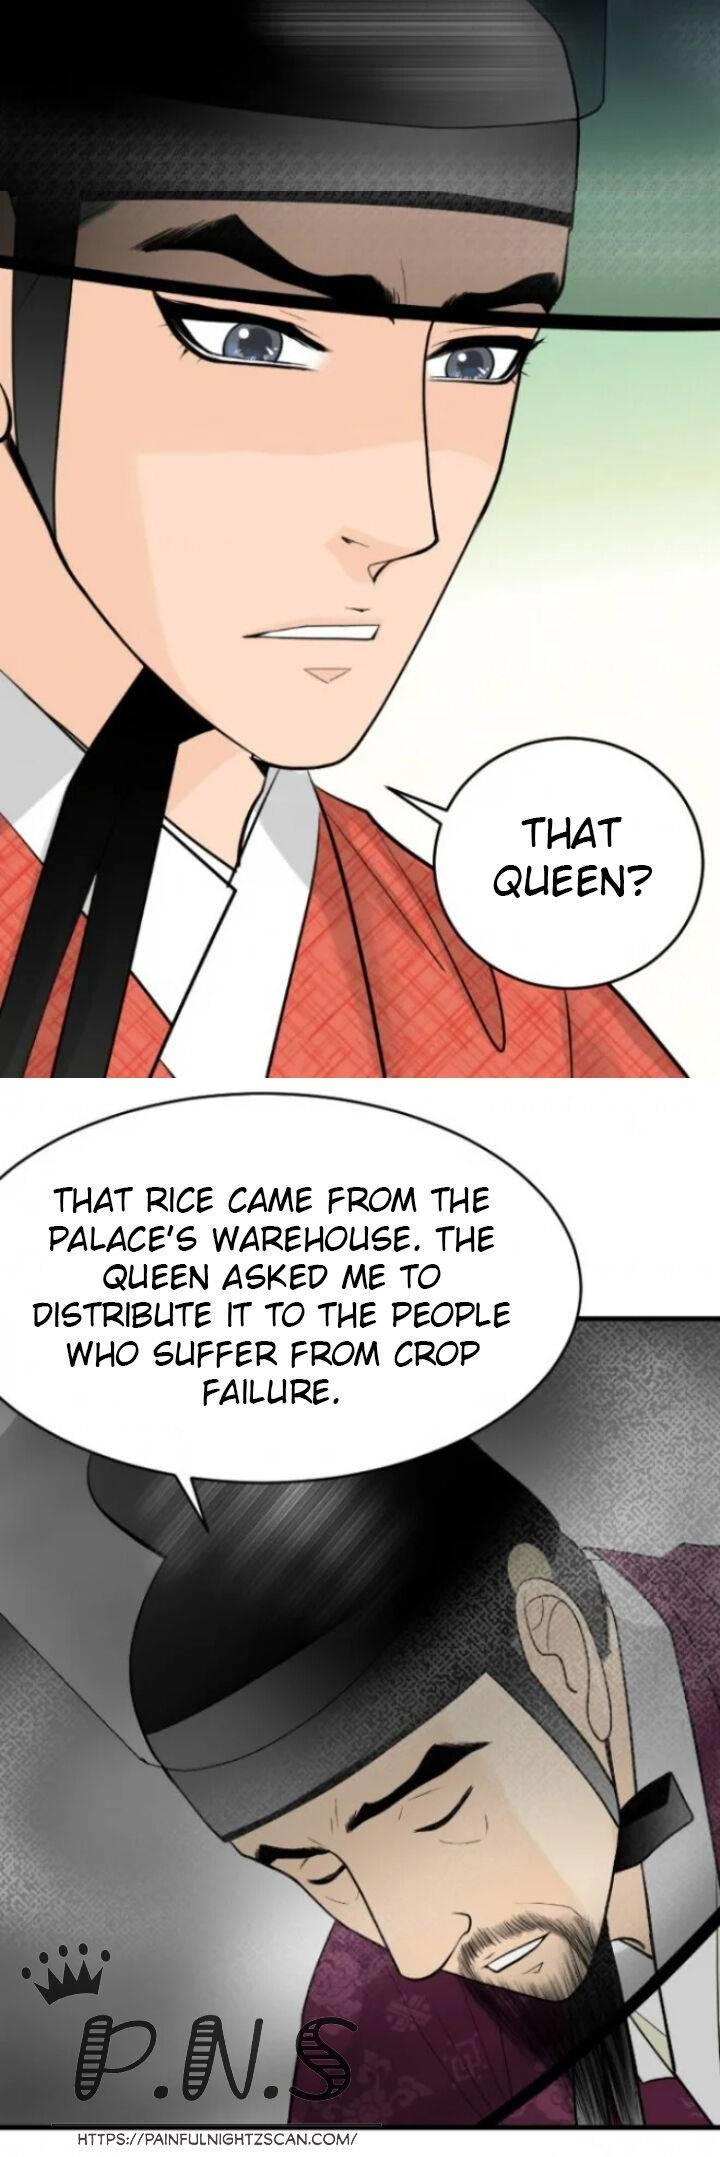 The Queen Of Flowers Chapter 16 page 9 - Mangakakalots.com